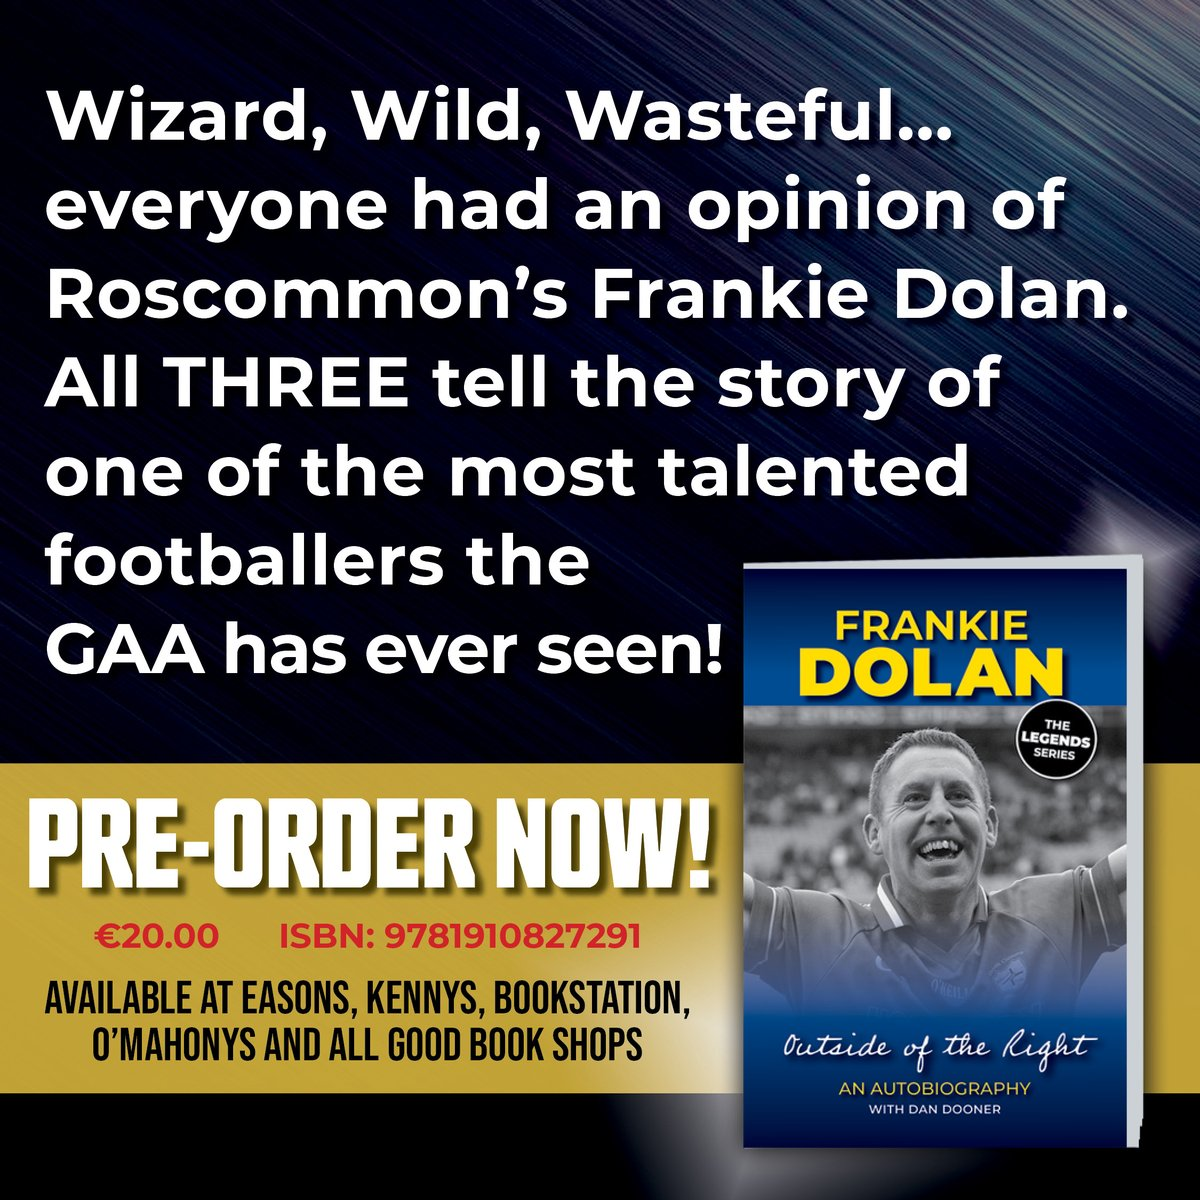 The One, The Only... Frankie Dolan, The Autobiography... Outside of the Right, launching May 3. Available to PRE-ORDER now. @RoscommonGAA @RoscommonHerald @RoscommonPeople @StBrigidsRos @GillHessLtd @OMahonysBooks @KennysBookshop @dan_dooner @shannonsidenews @RossSupporters